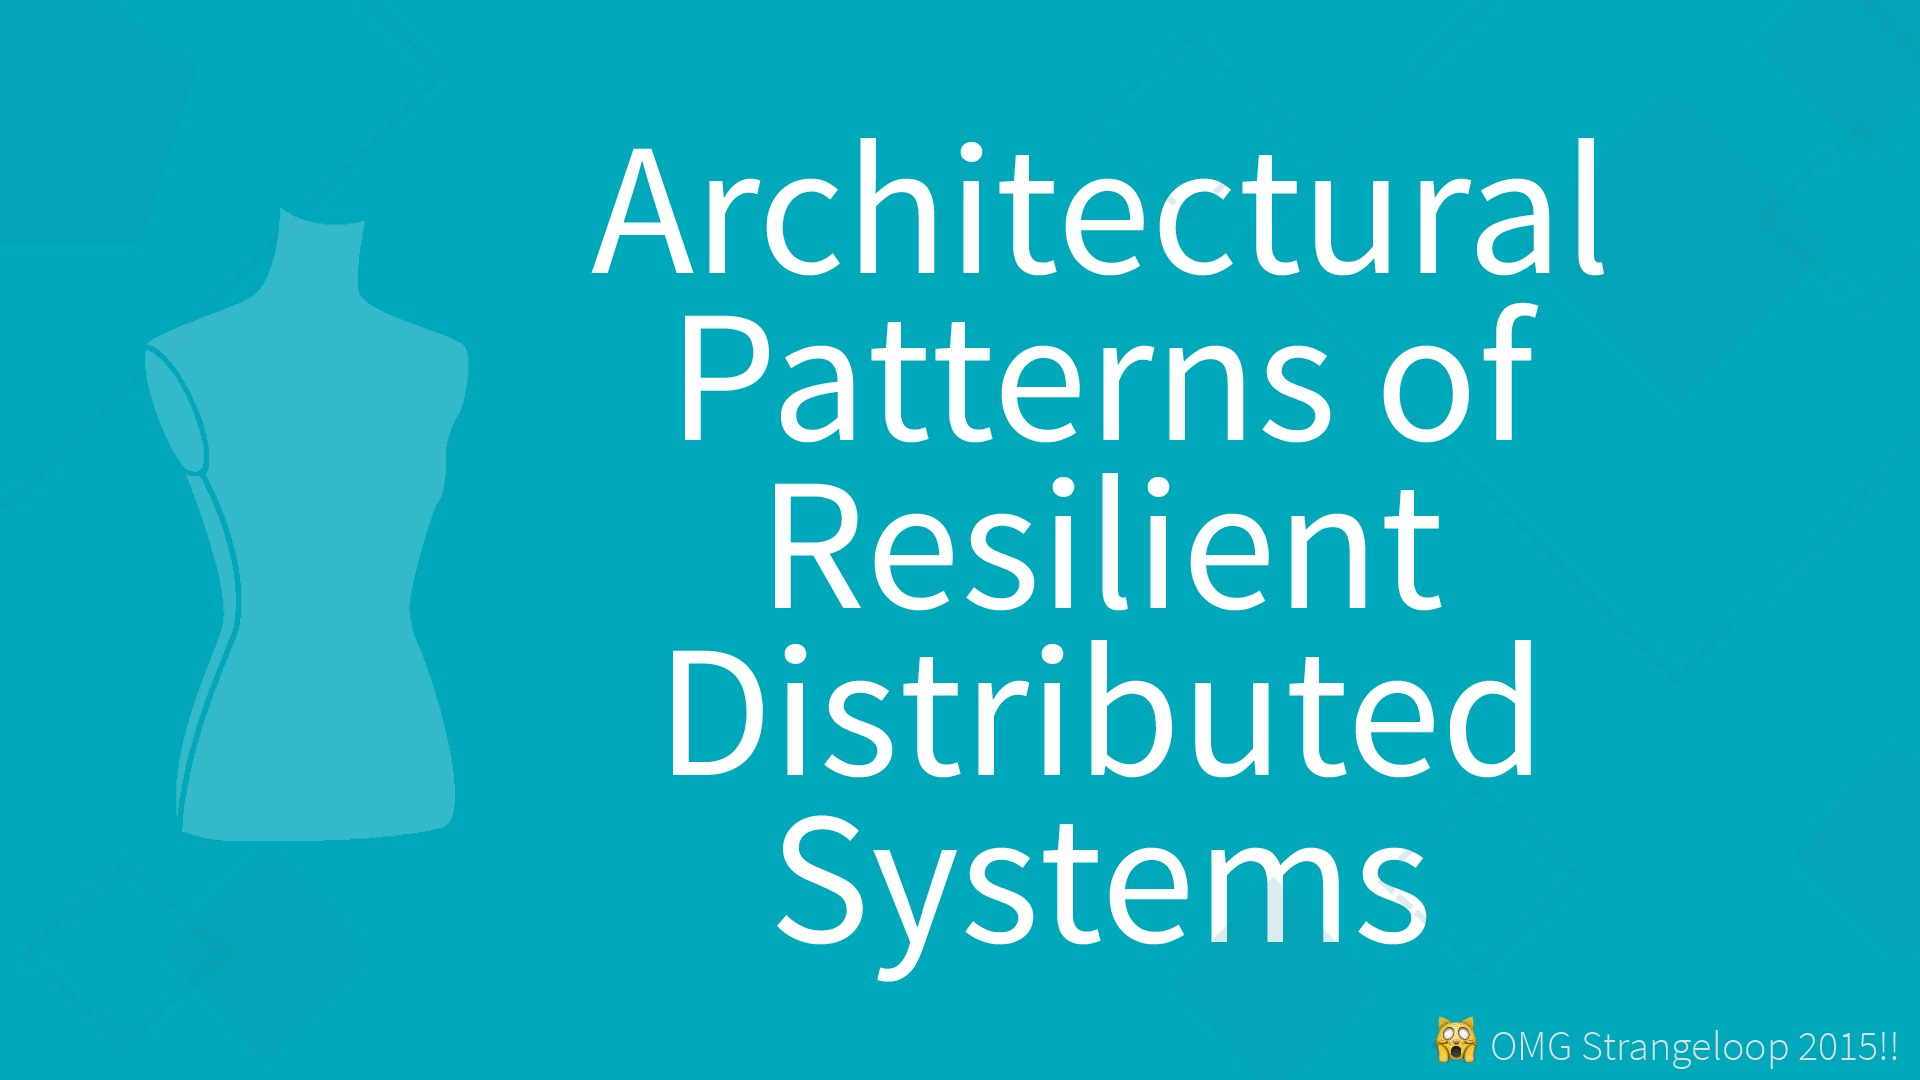 Architectural Patterns of Resilient Distributed Systems